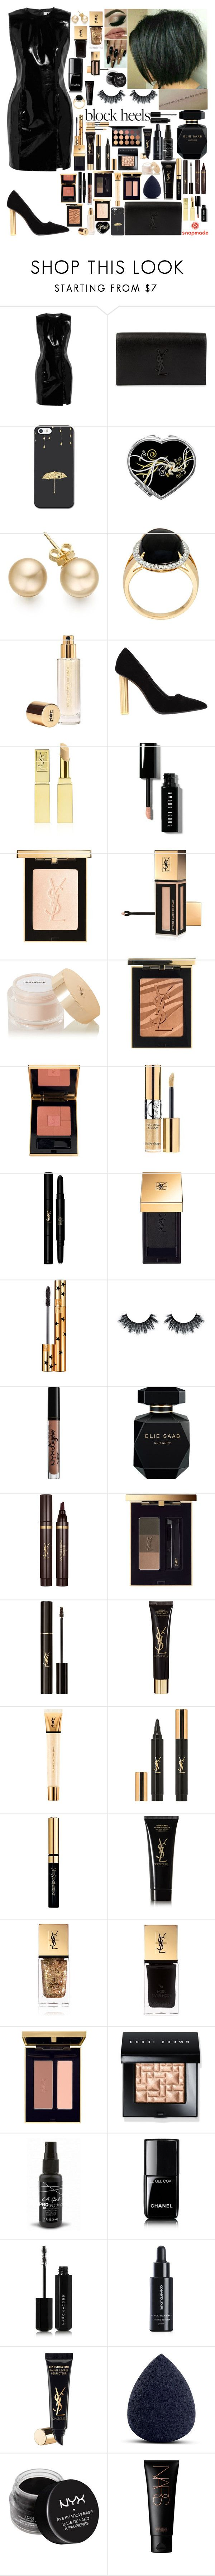 """War in Me"" by girlygirlprincess ❤ liked on Polyvore featuring Topshop Unique, Yves Saint Laurent, Salvatore Ferragamo, Bobbi Brown Cosmetics, NYX, Elie Saab, Chanel, Marc Jacobs, Miriam Quevedo and NARS Cosmetics"